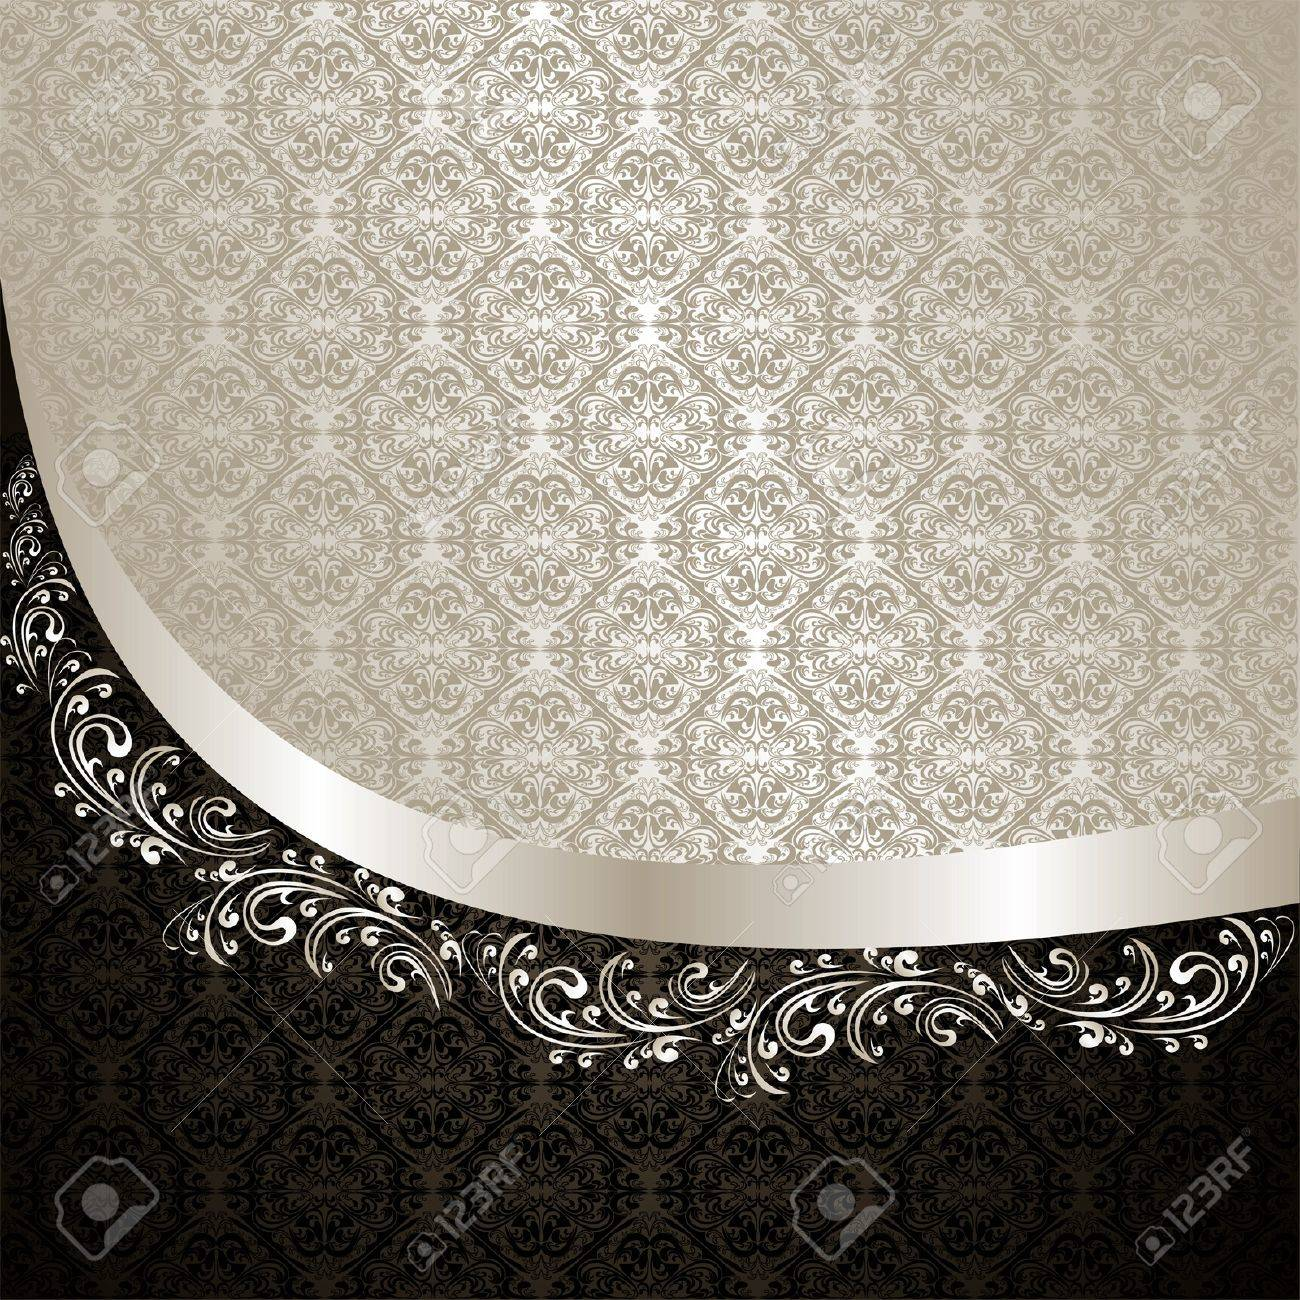 Luxury Background decorated a Vintage ornament silver and black - 16844679